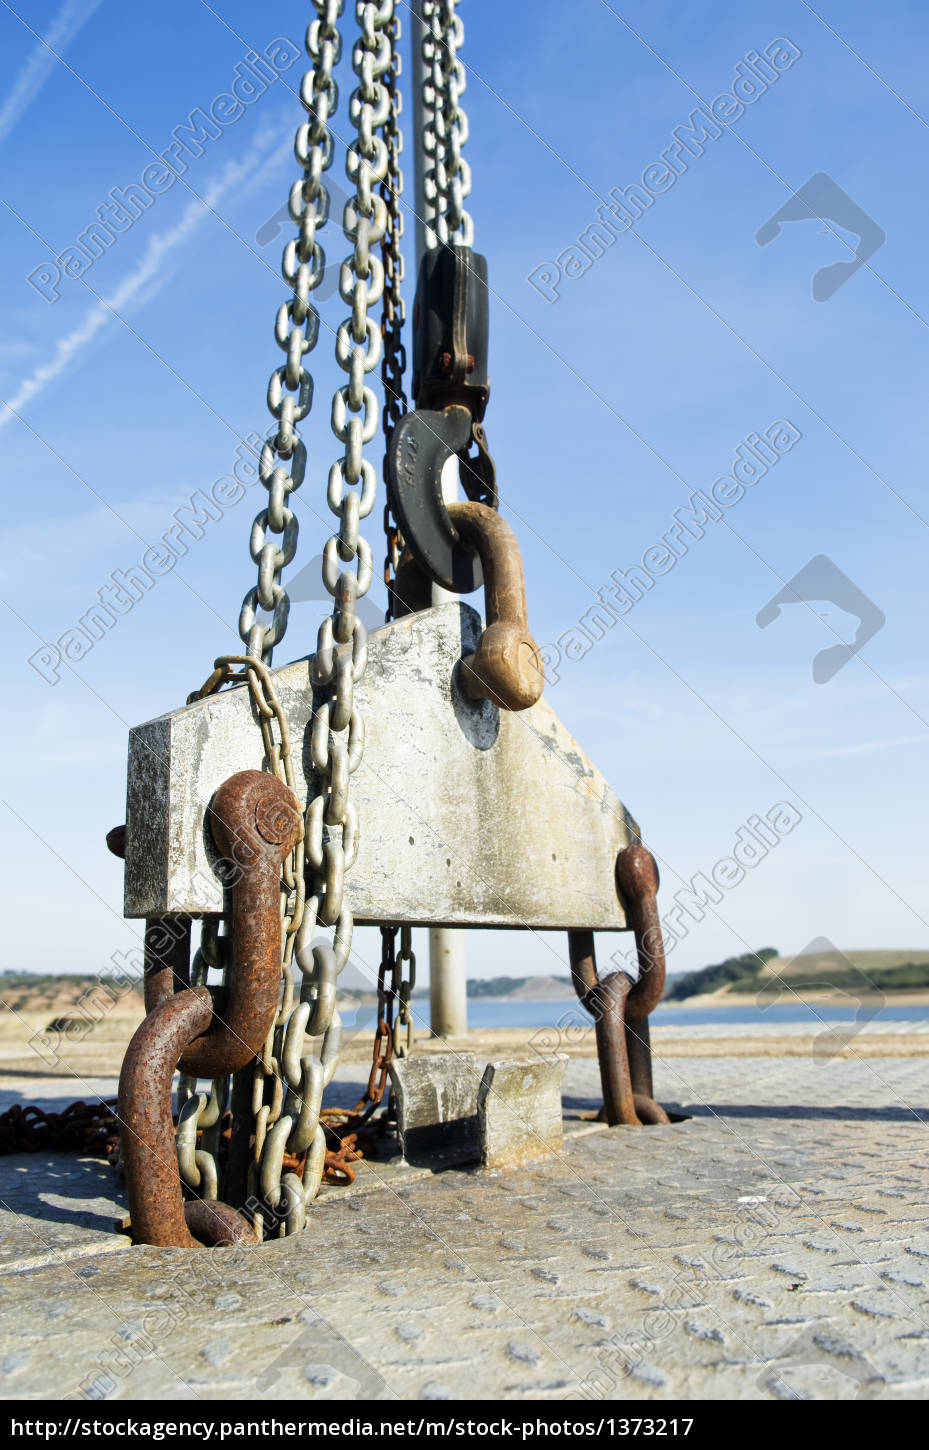 industrial, chain, hook, heavy, hard, crane - 1373217